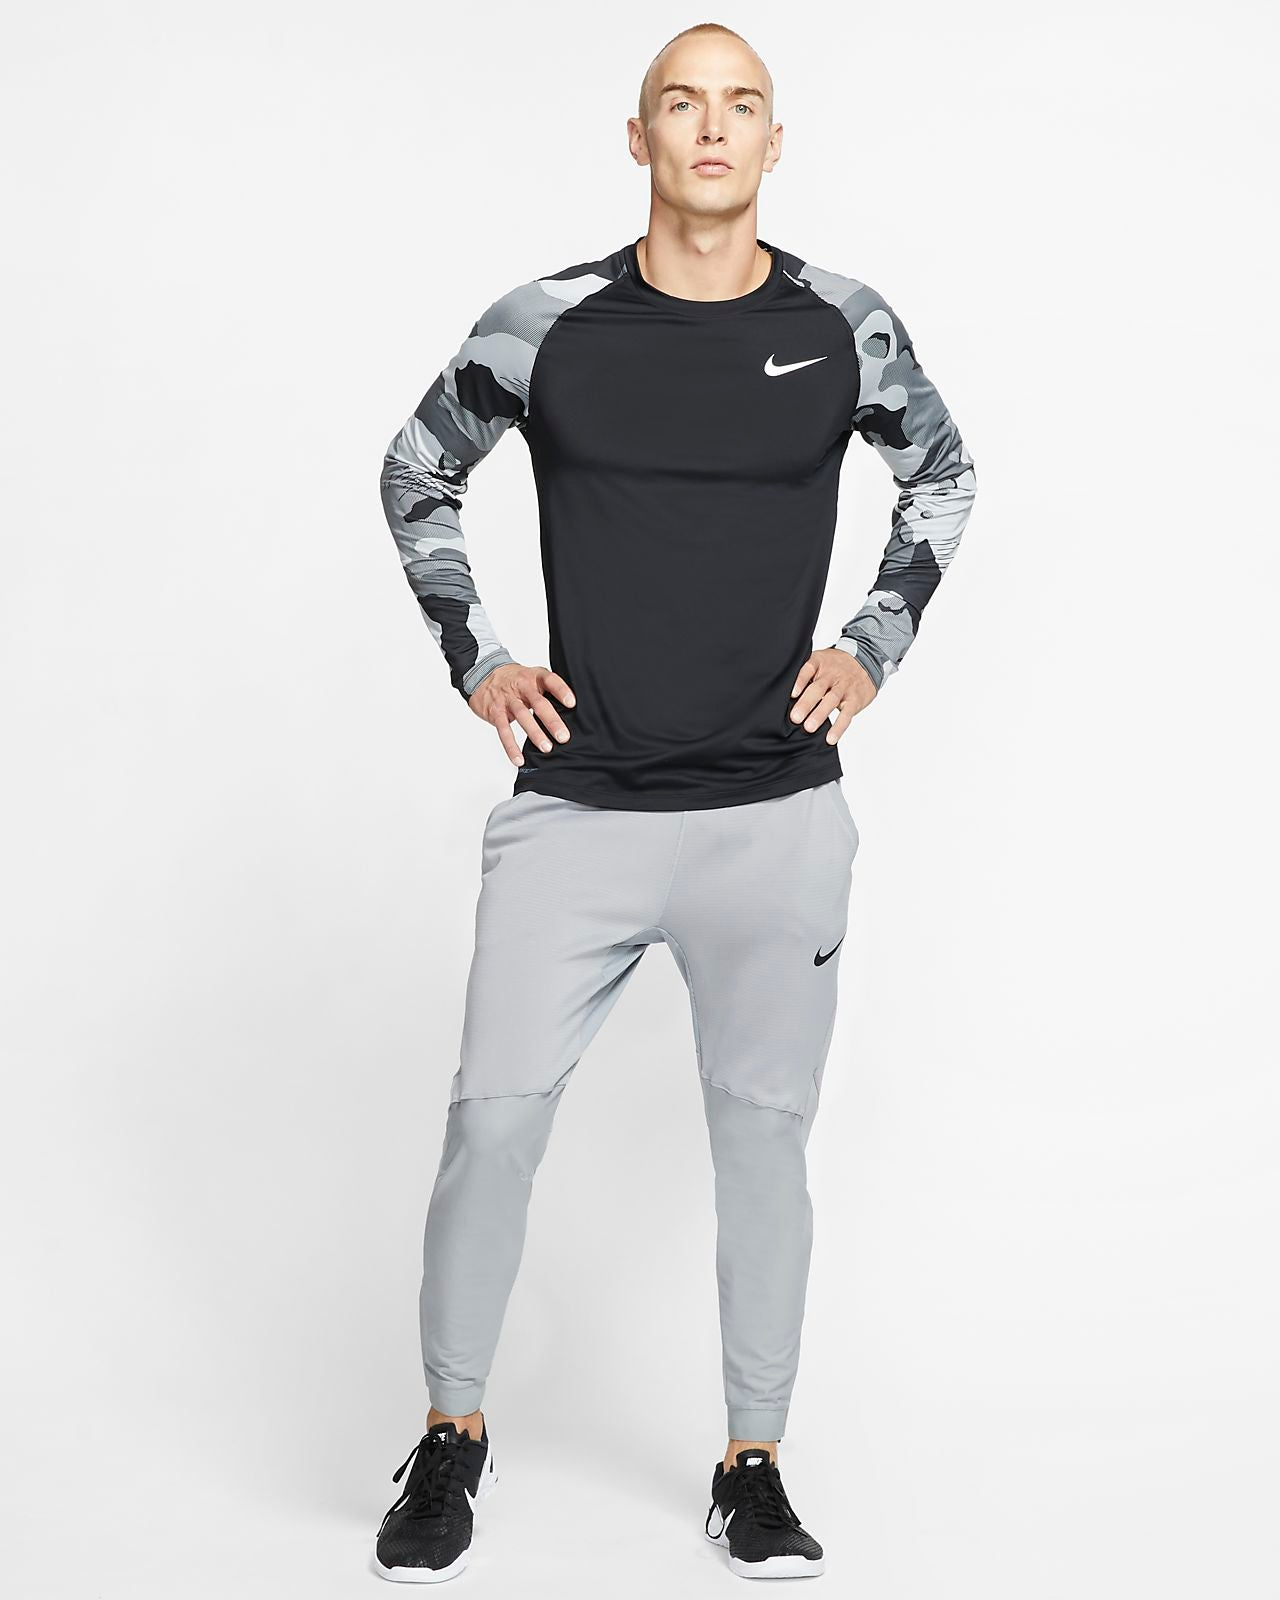 Men's Nike Pro Long Sleeved Top BV5519-010